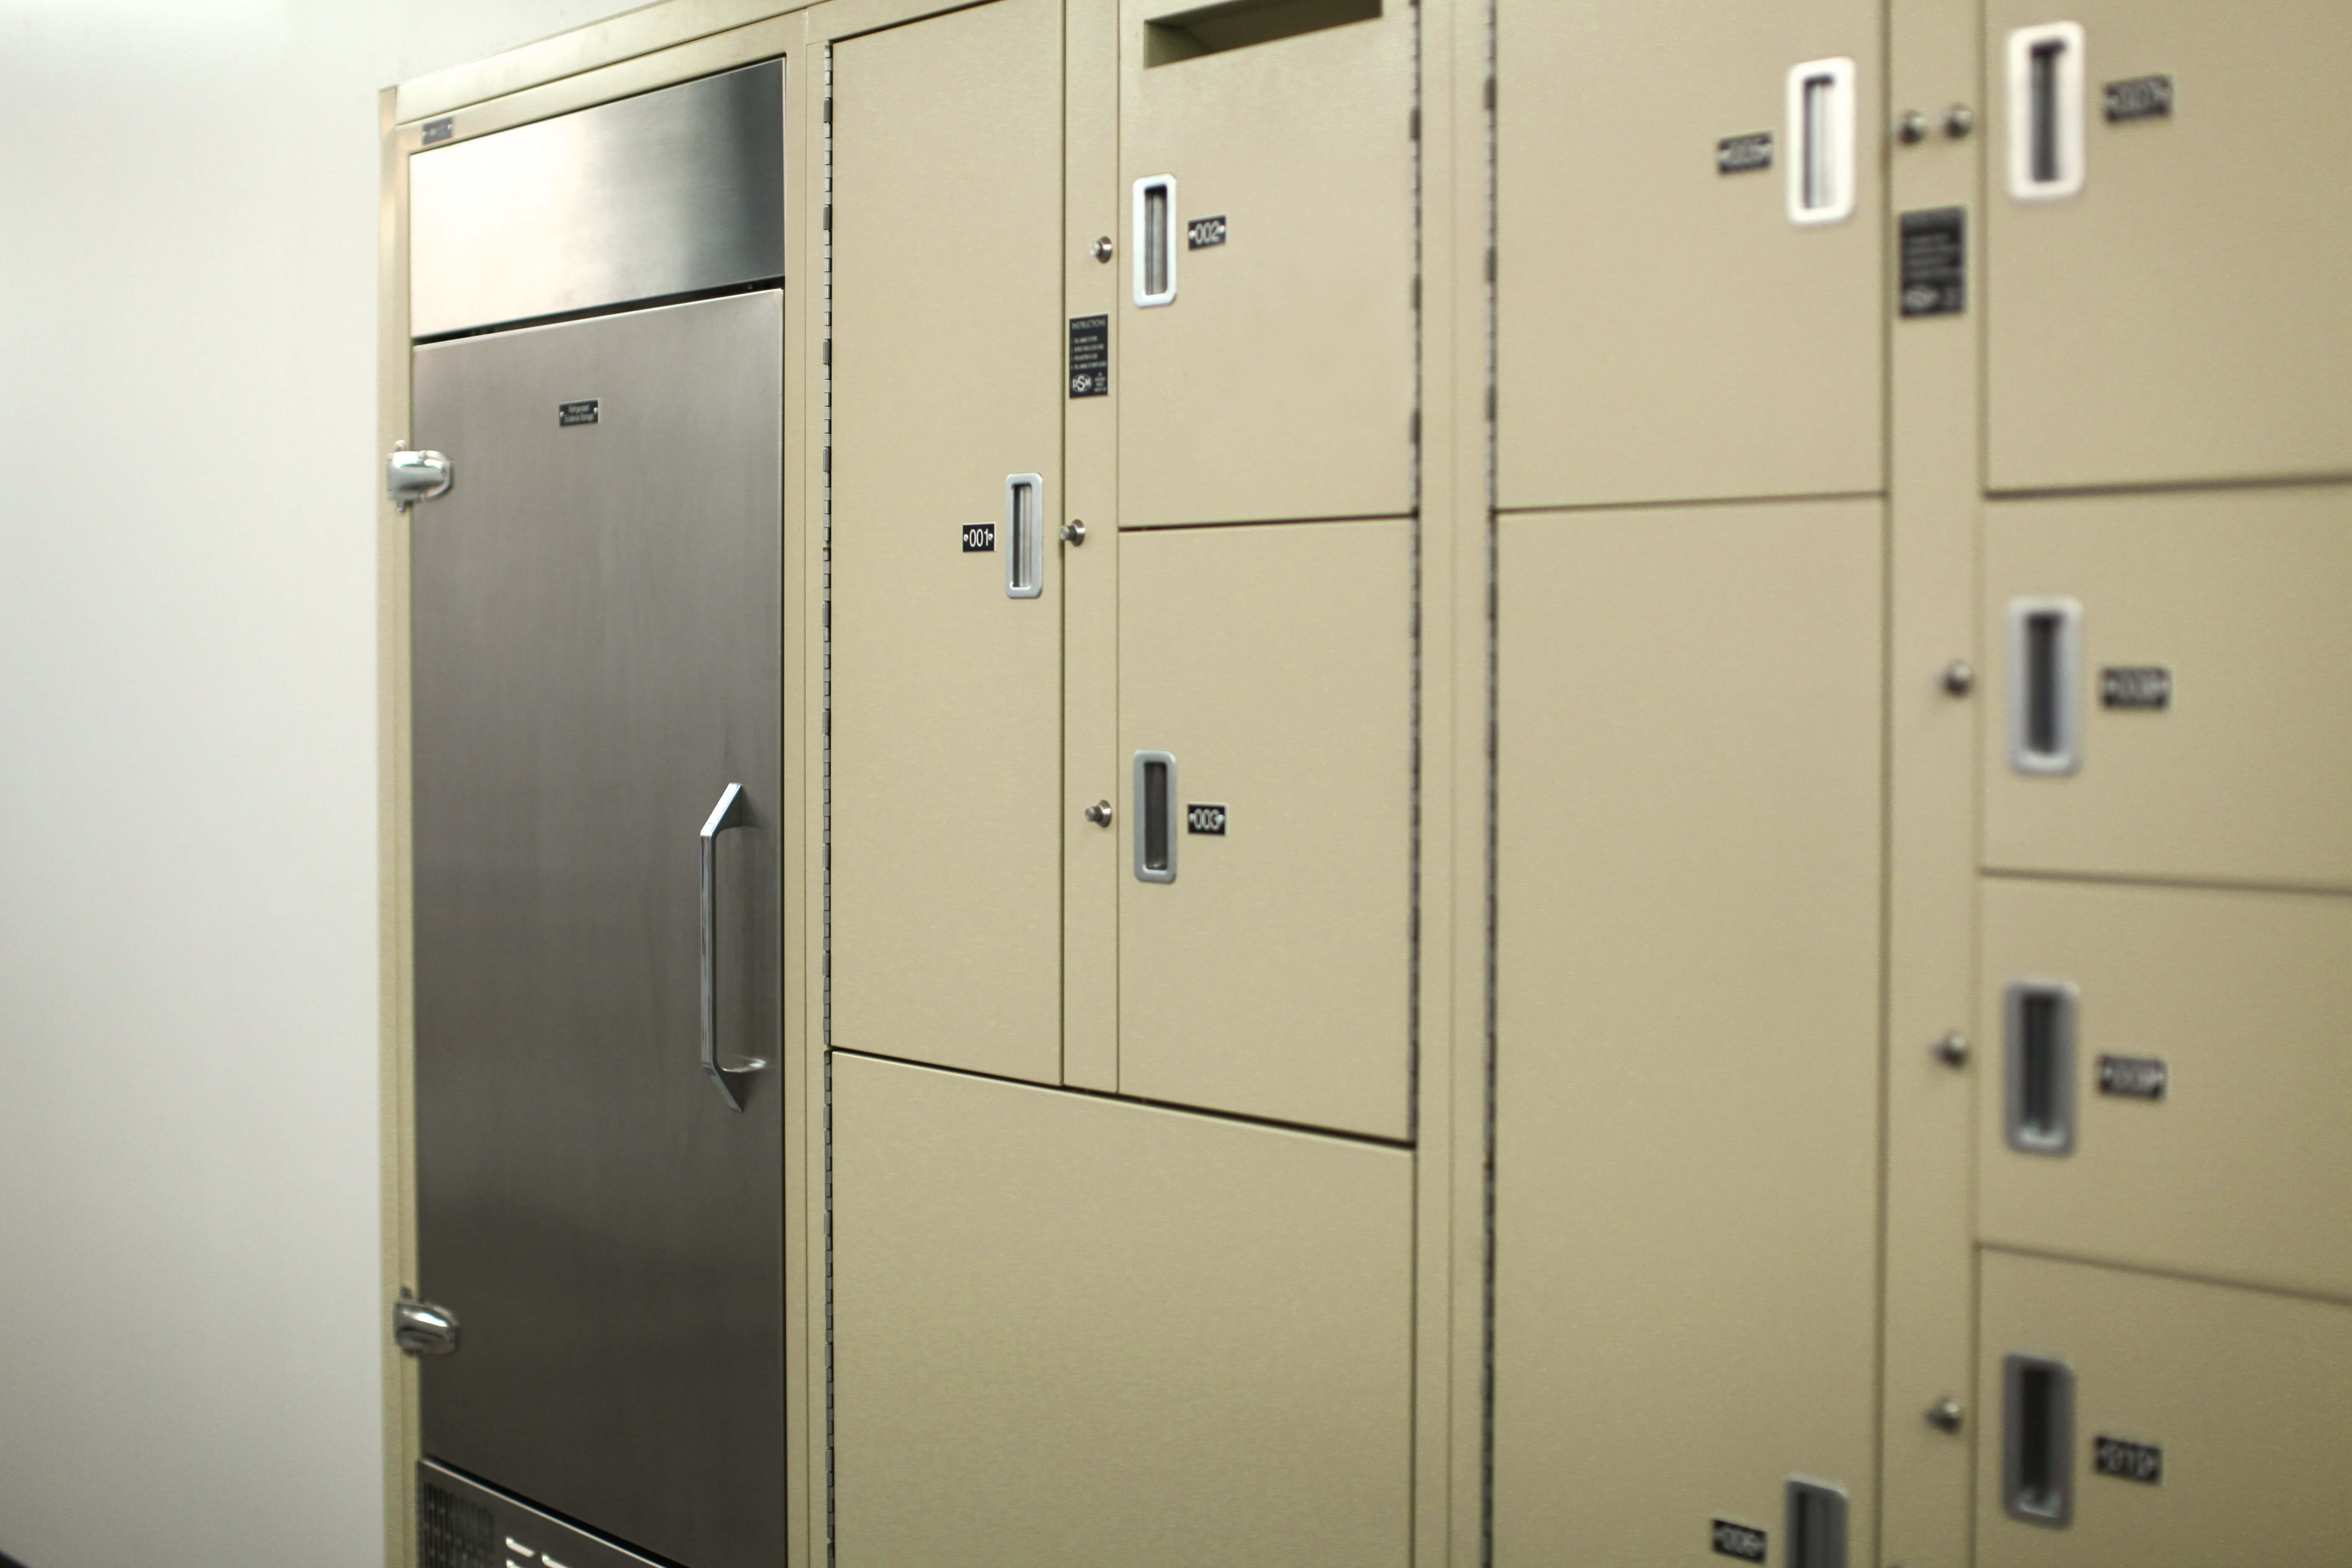 Built in evidence storage at Bensalem Police Department